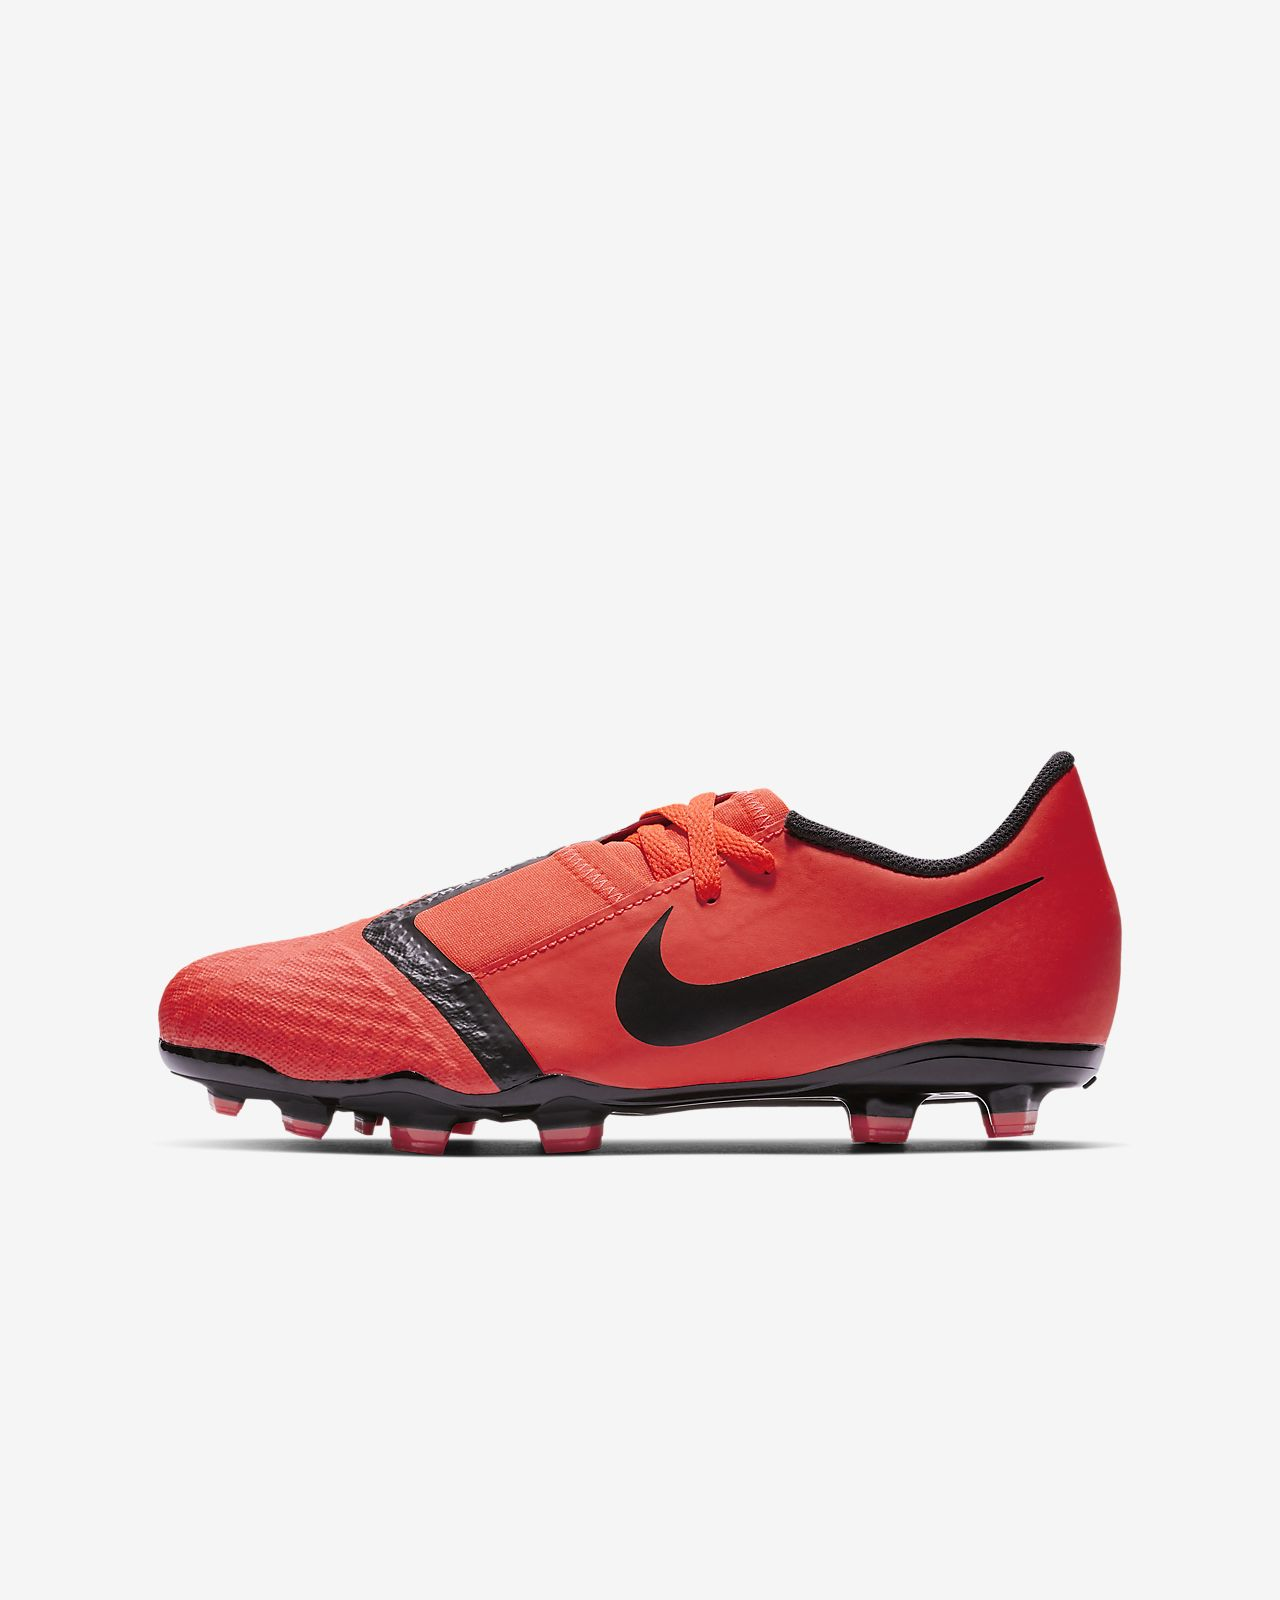 Nike Jr. PhantomVNM Academy FG Game Over Older Kids' Firm-Ground Football Boot